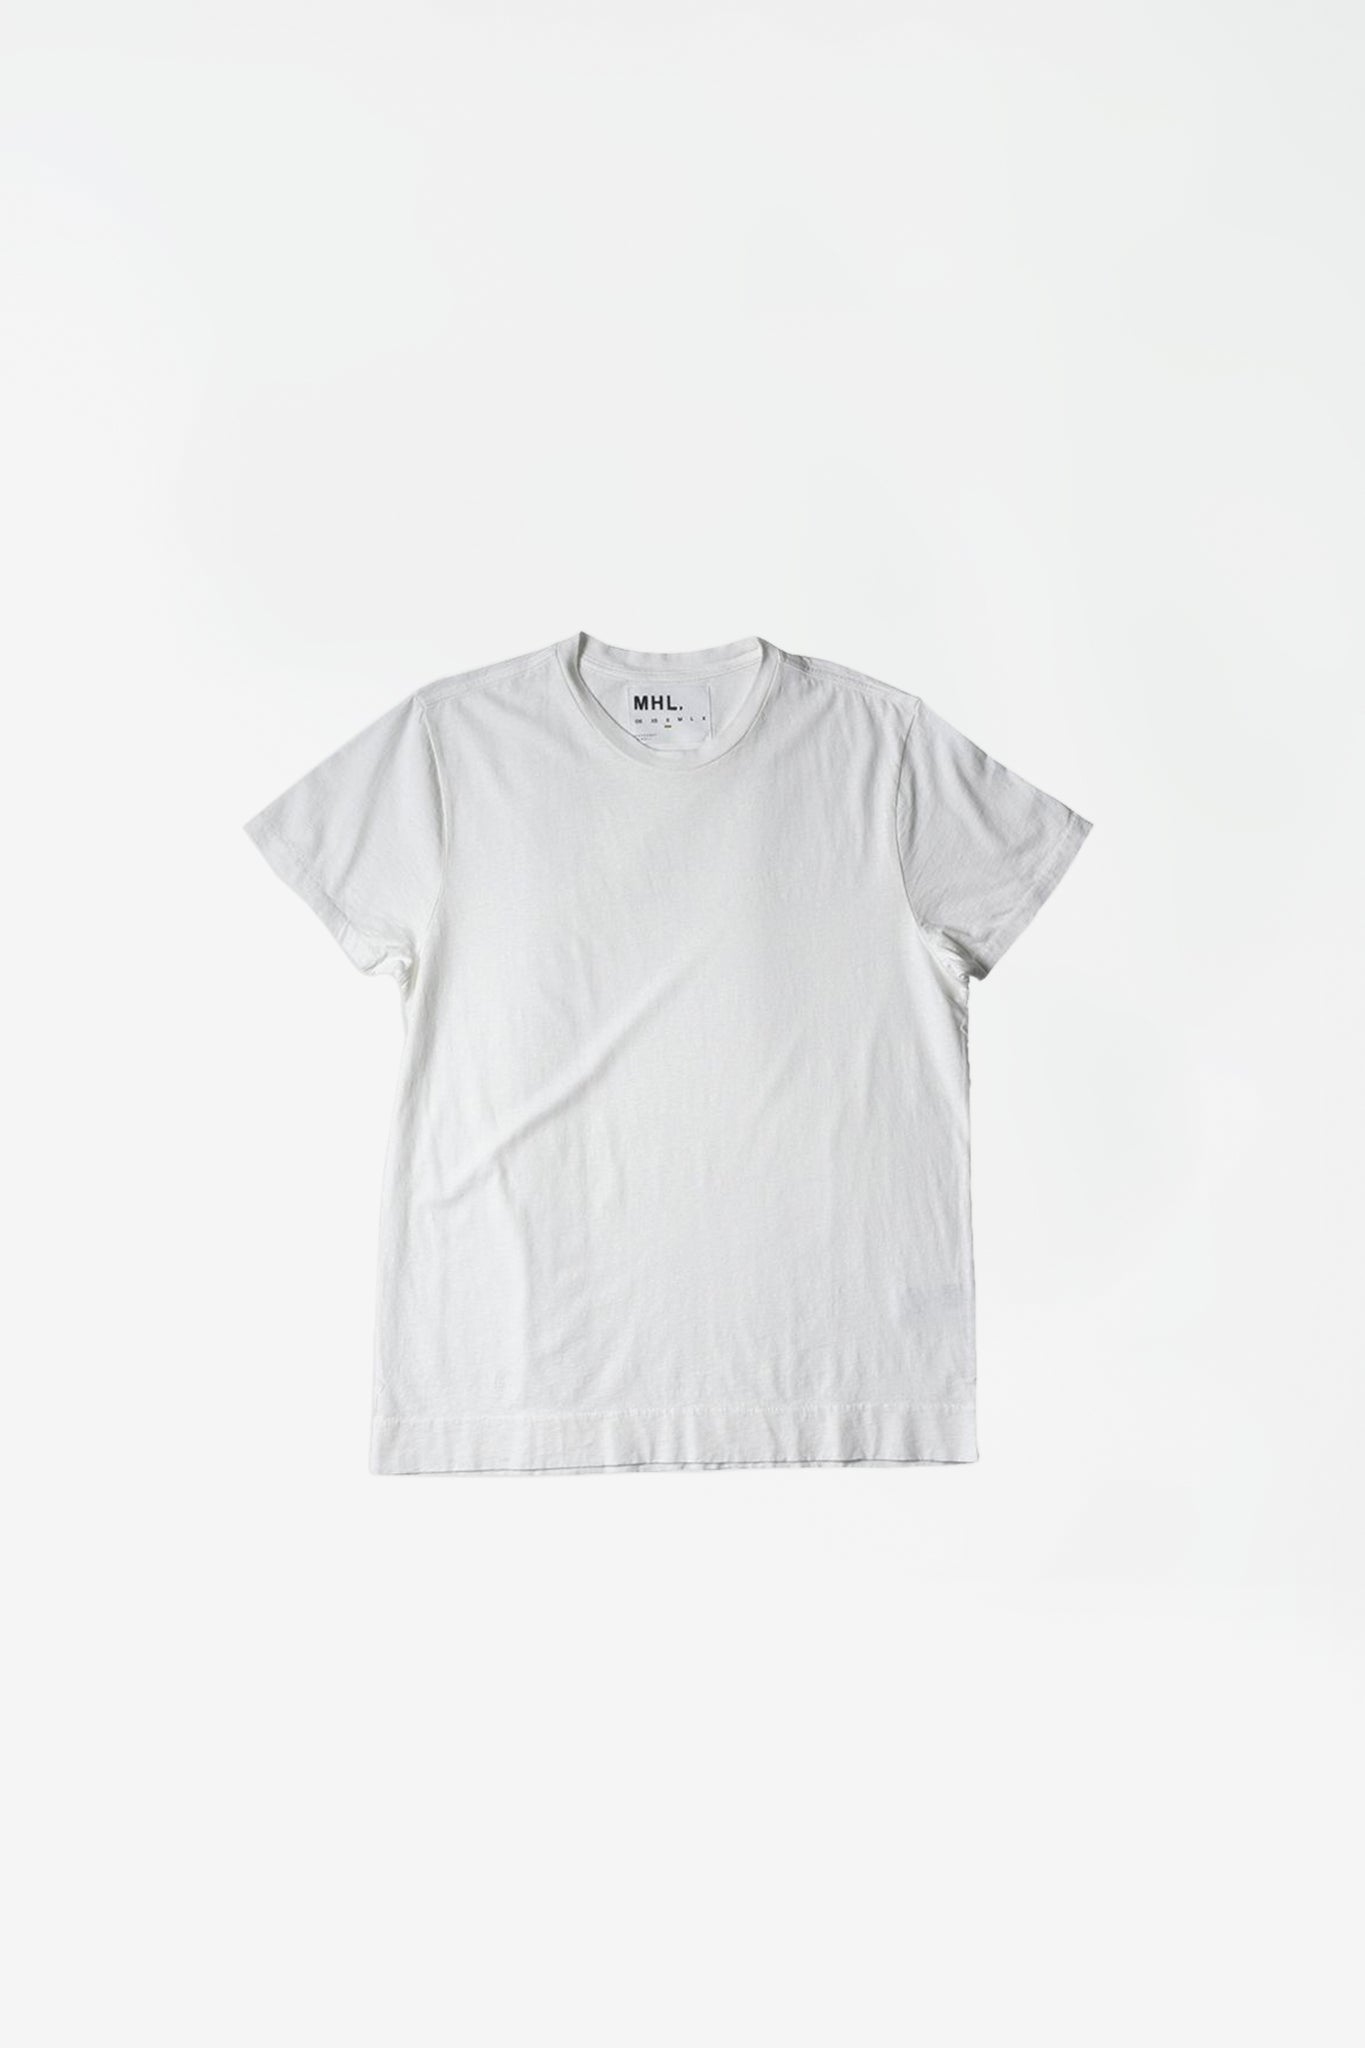 Basic t-shirt cotton linen jersey white